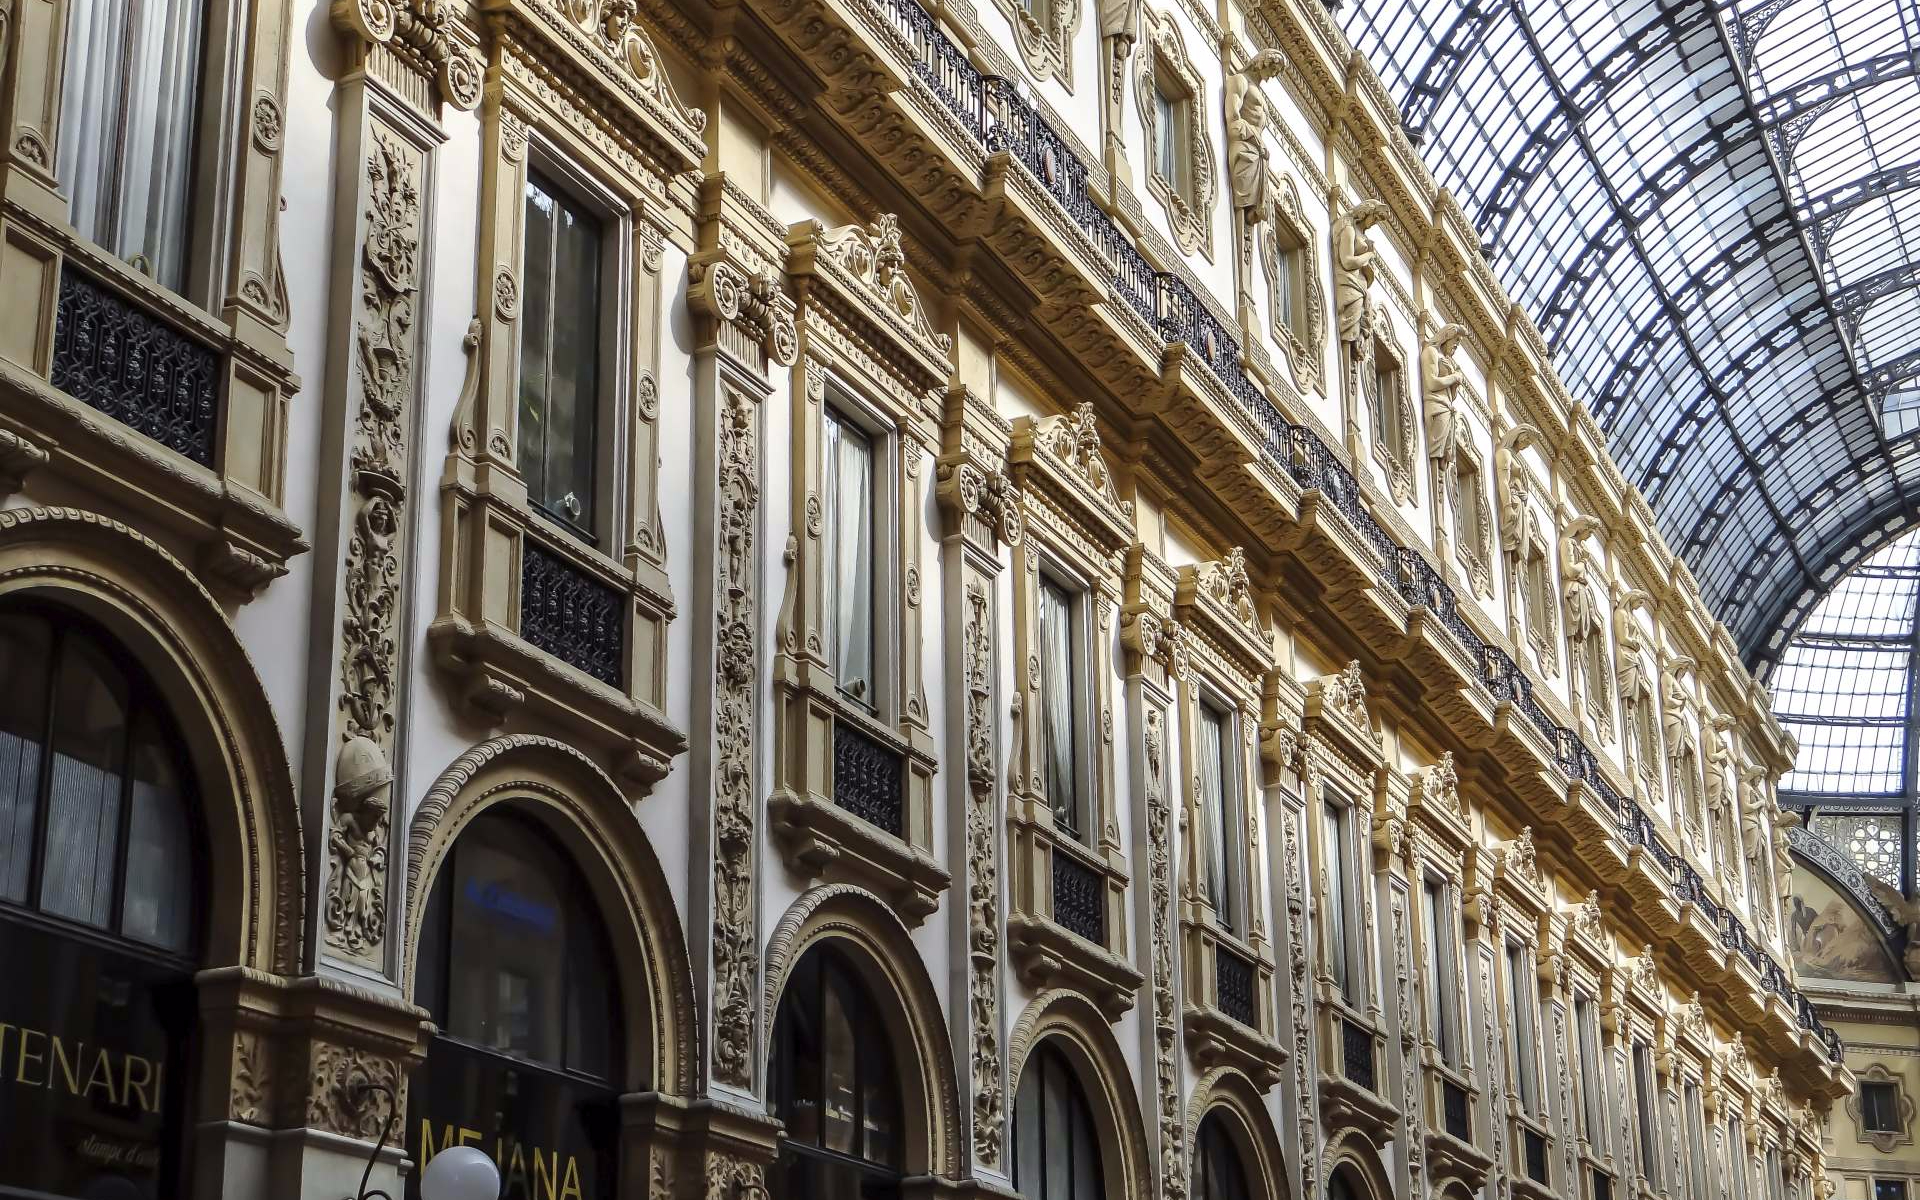 F2709f12 0d42 4a71 b8c4 16f6dc2bbf30 7631 florence gourmet italy  walking food and art tour 04